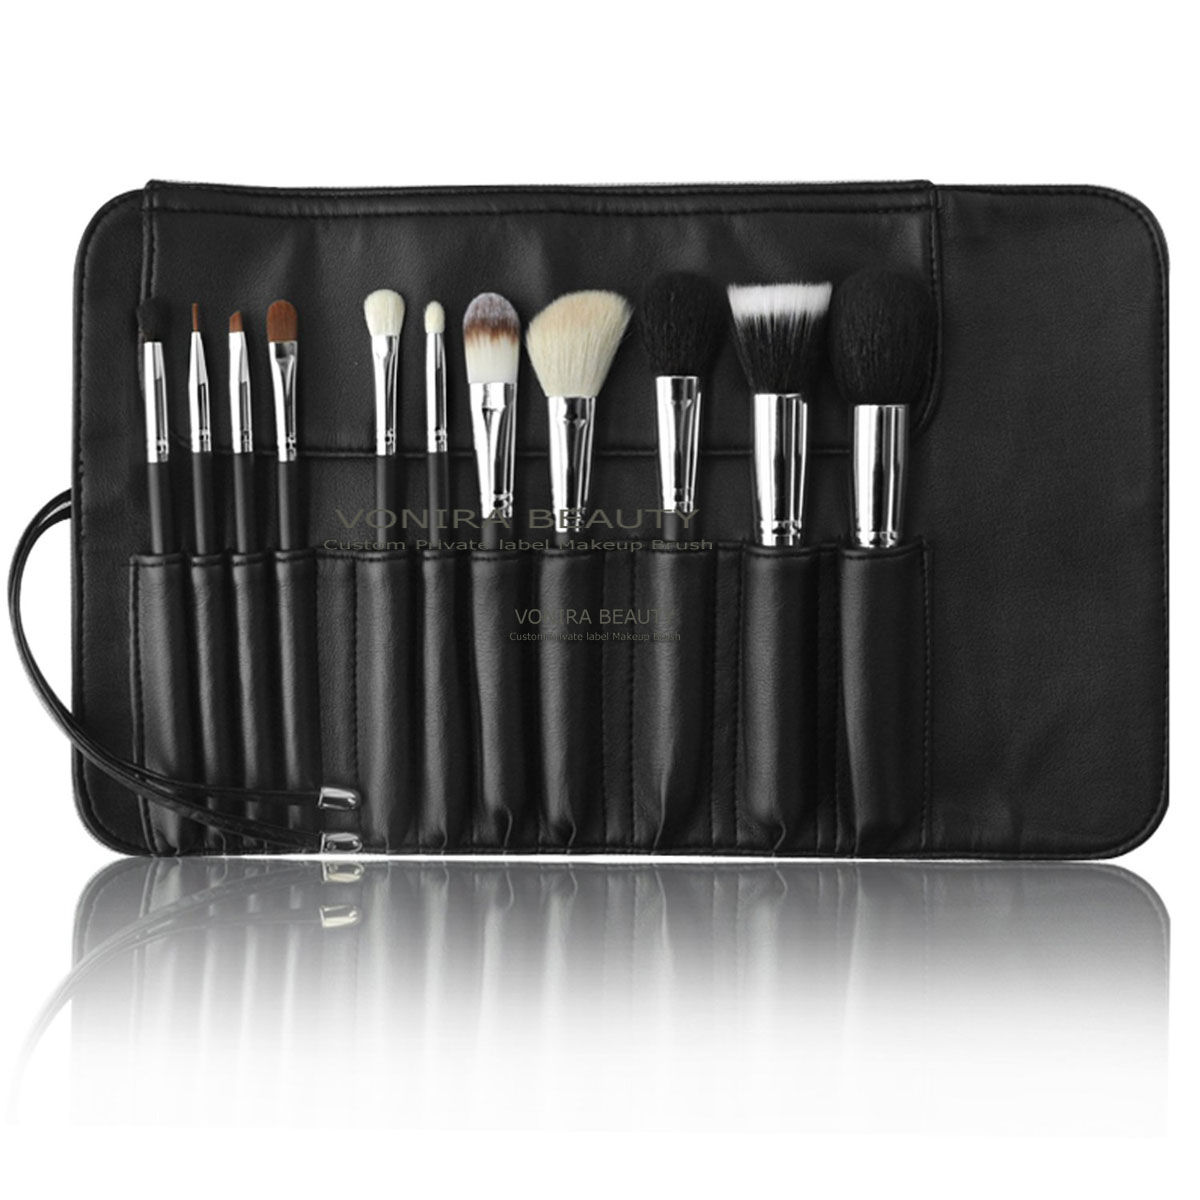 Quality 11 Piece Makeup Brushes Set